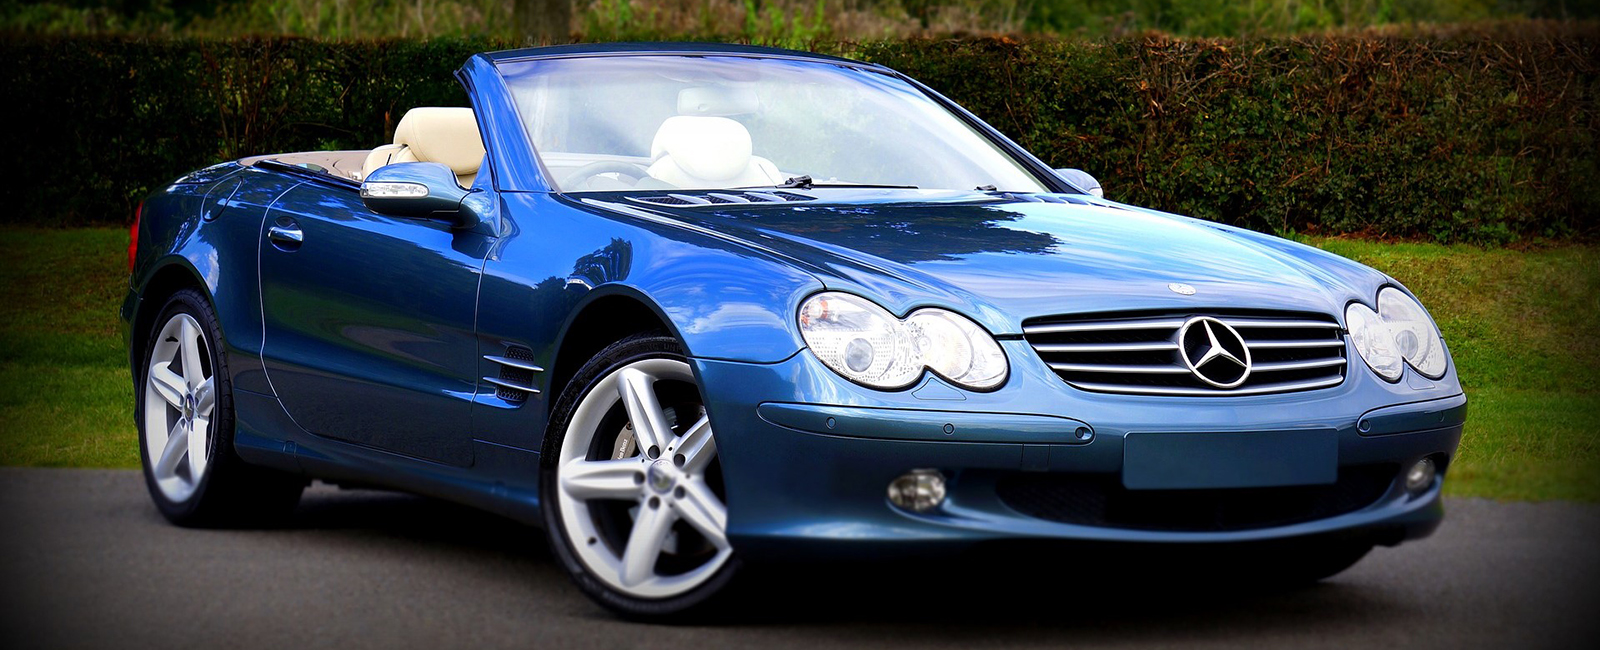 Mercedes Benz Blue